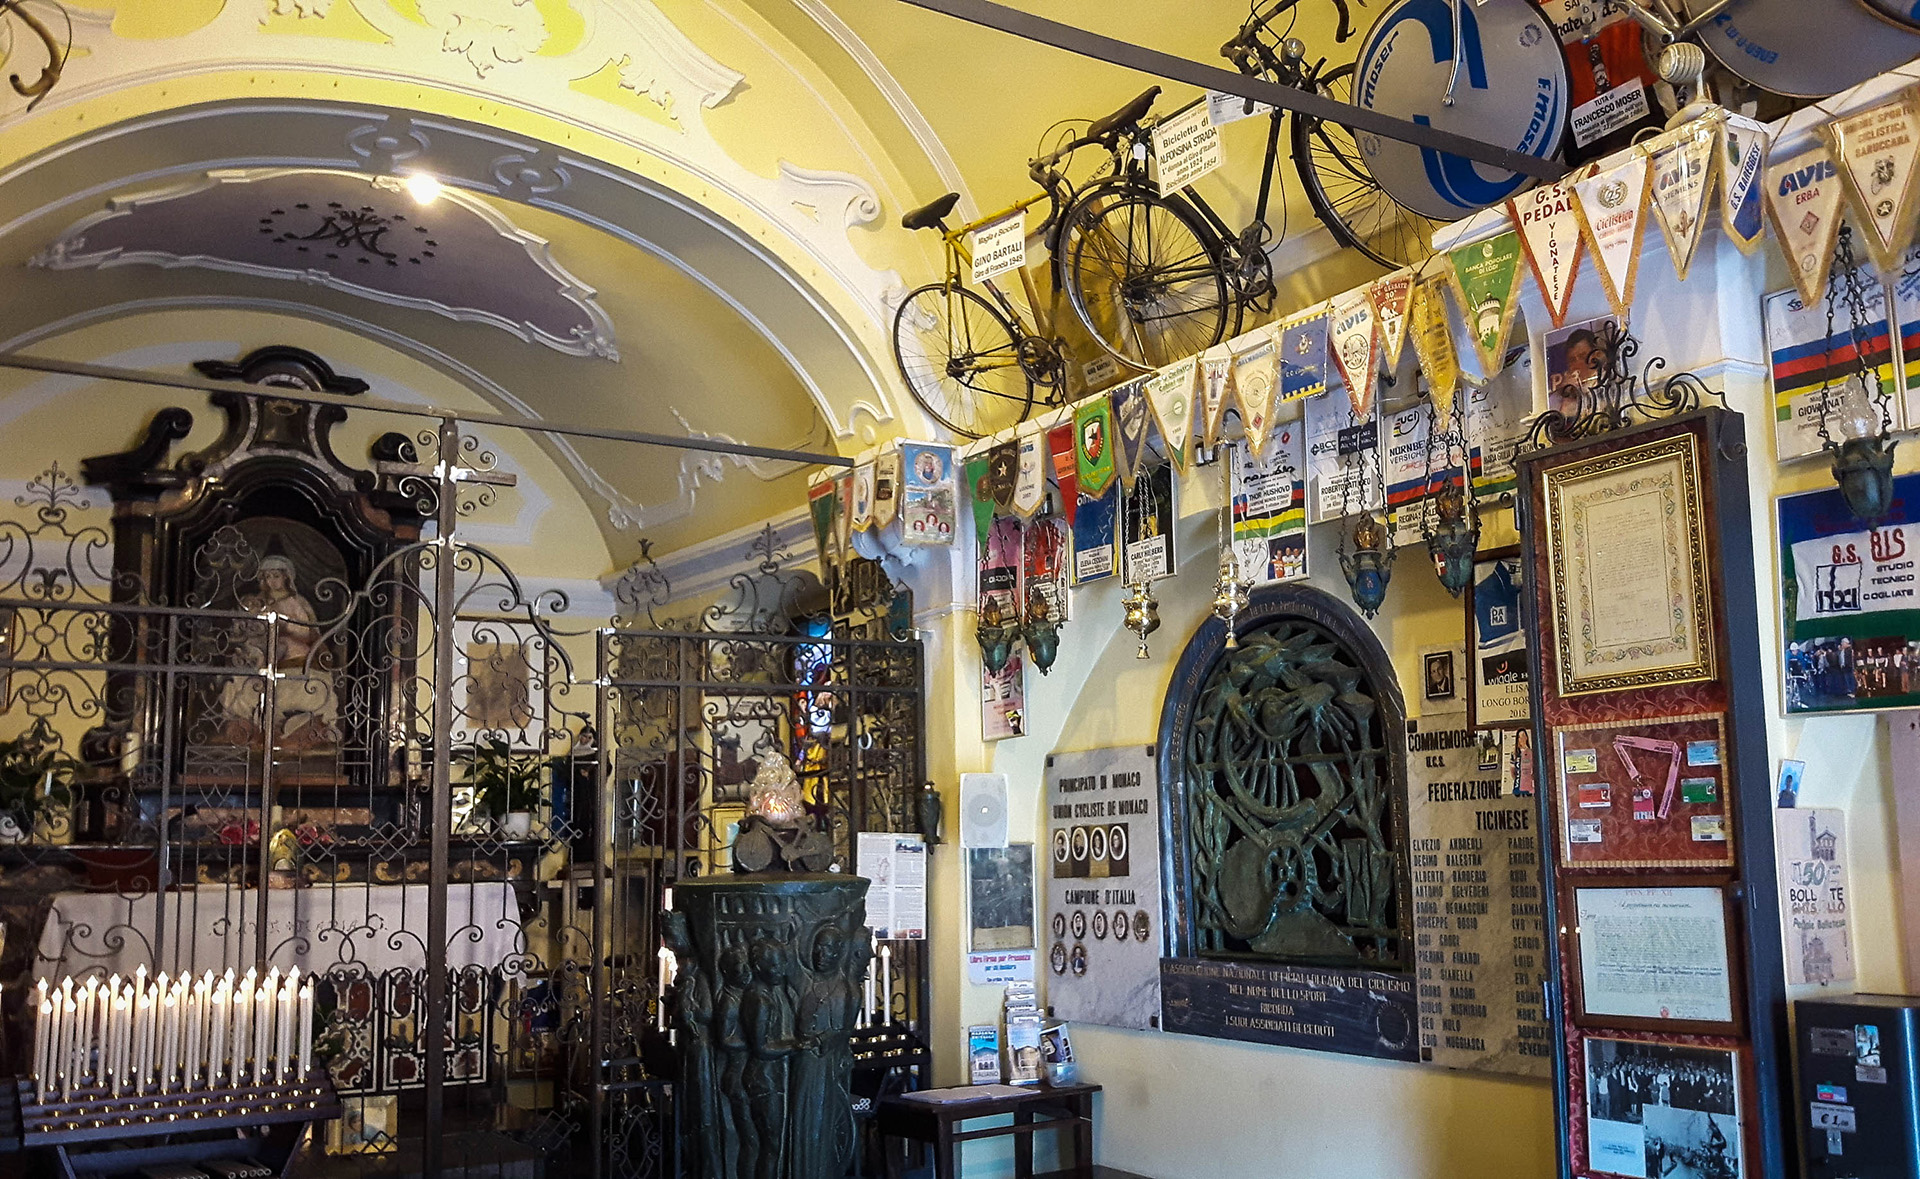 The extraordinary but solemn chapel of the Madonna di Ghisallo, patron Saint of Cycling located at the summit of the Passo del Ghisallo